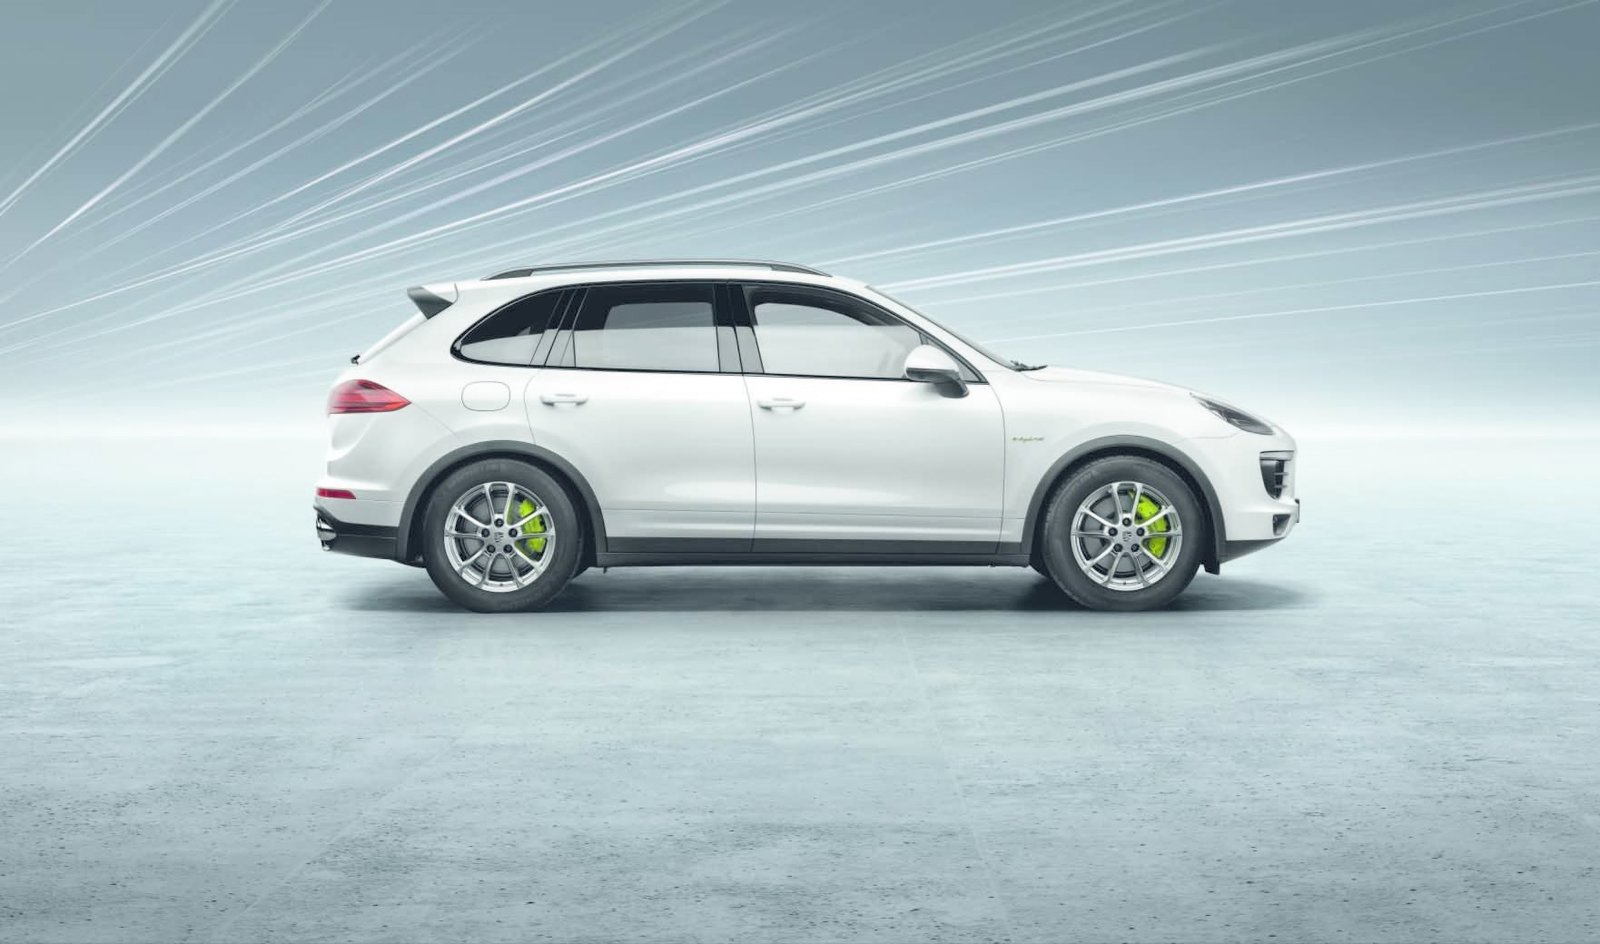 As a sporty vehicle in the SUV segment, the Porsche Cayenne has been challenging automotive conventions for over a decade. Four new 2015 versions, the Cayenne Diesel, Cayenne S, Cayenne Turbo, and Cayenne S E-Hybrid, promise to expand upon that legacy.  Photo 2 of 8 in New Porsche Cayenne Editions Promise Greater Efficiency Without Compromising Performance